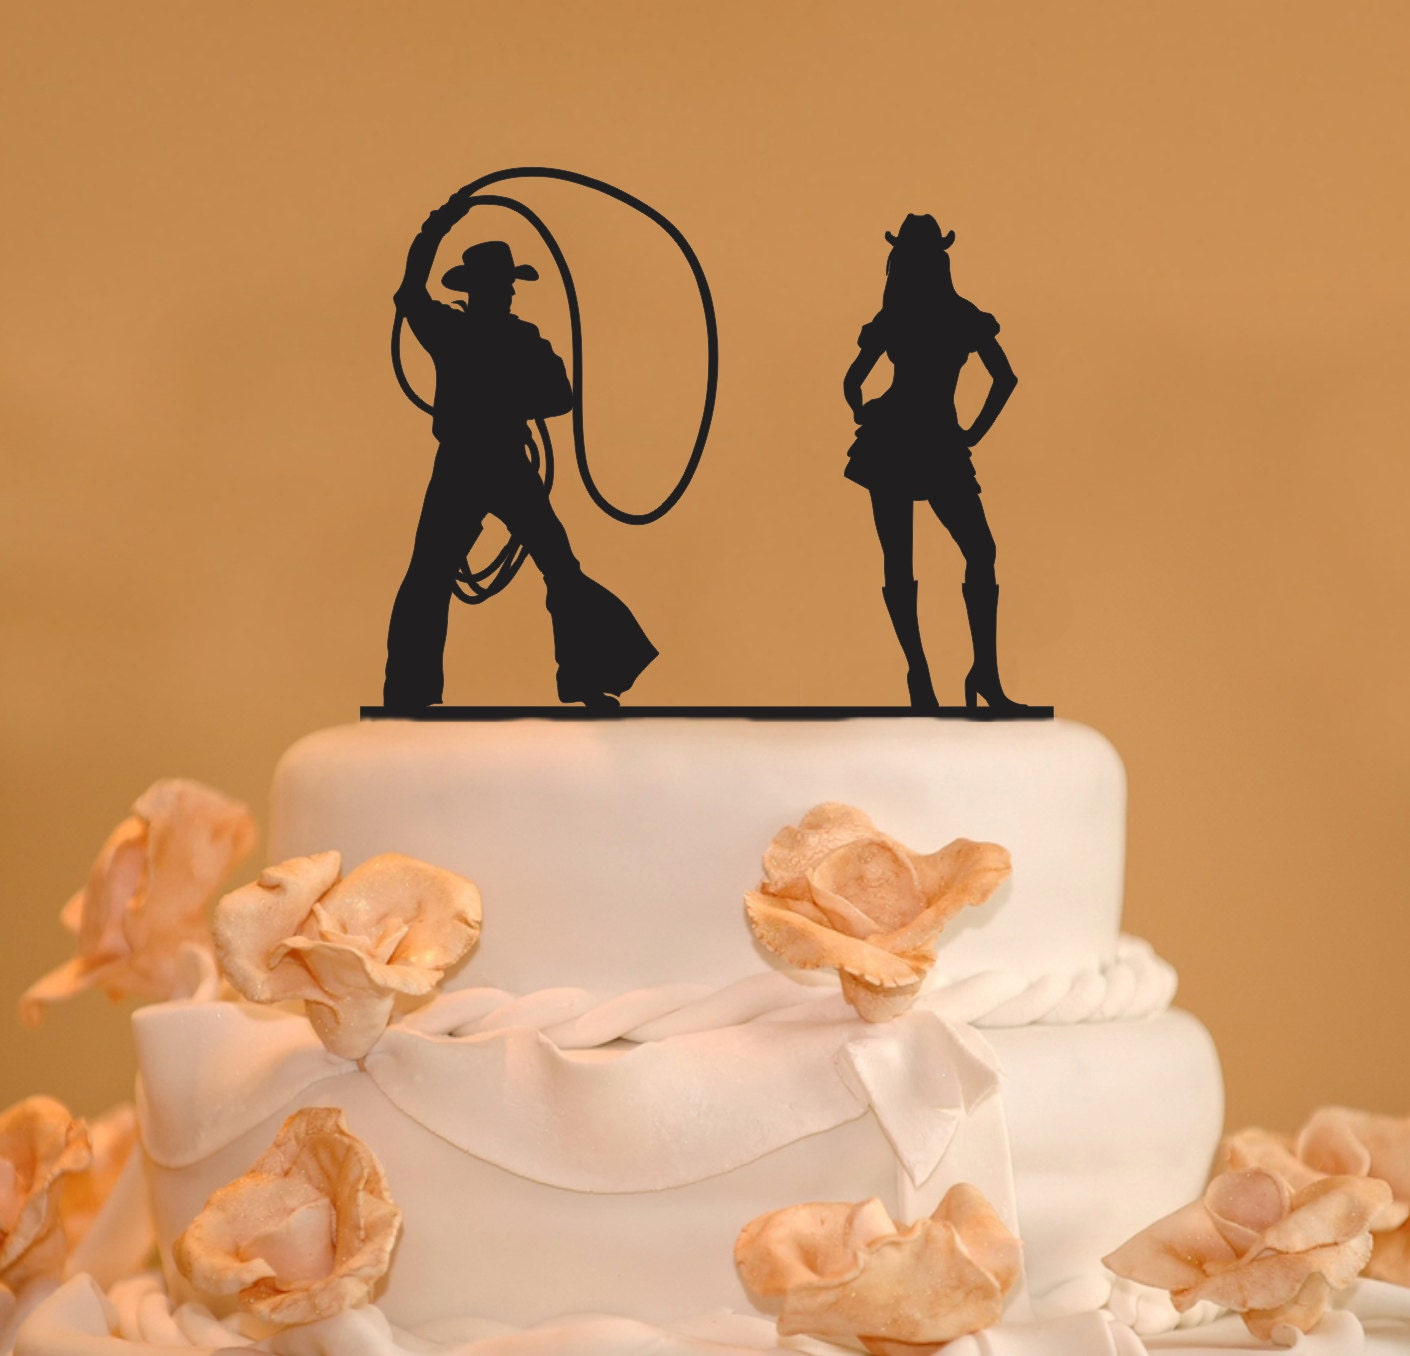 Cowboy Cowgirl Wedding Ideas: Silhouette Wedding Cake Topper Cowboy Cowgirl Wedding Cake